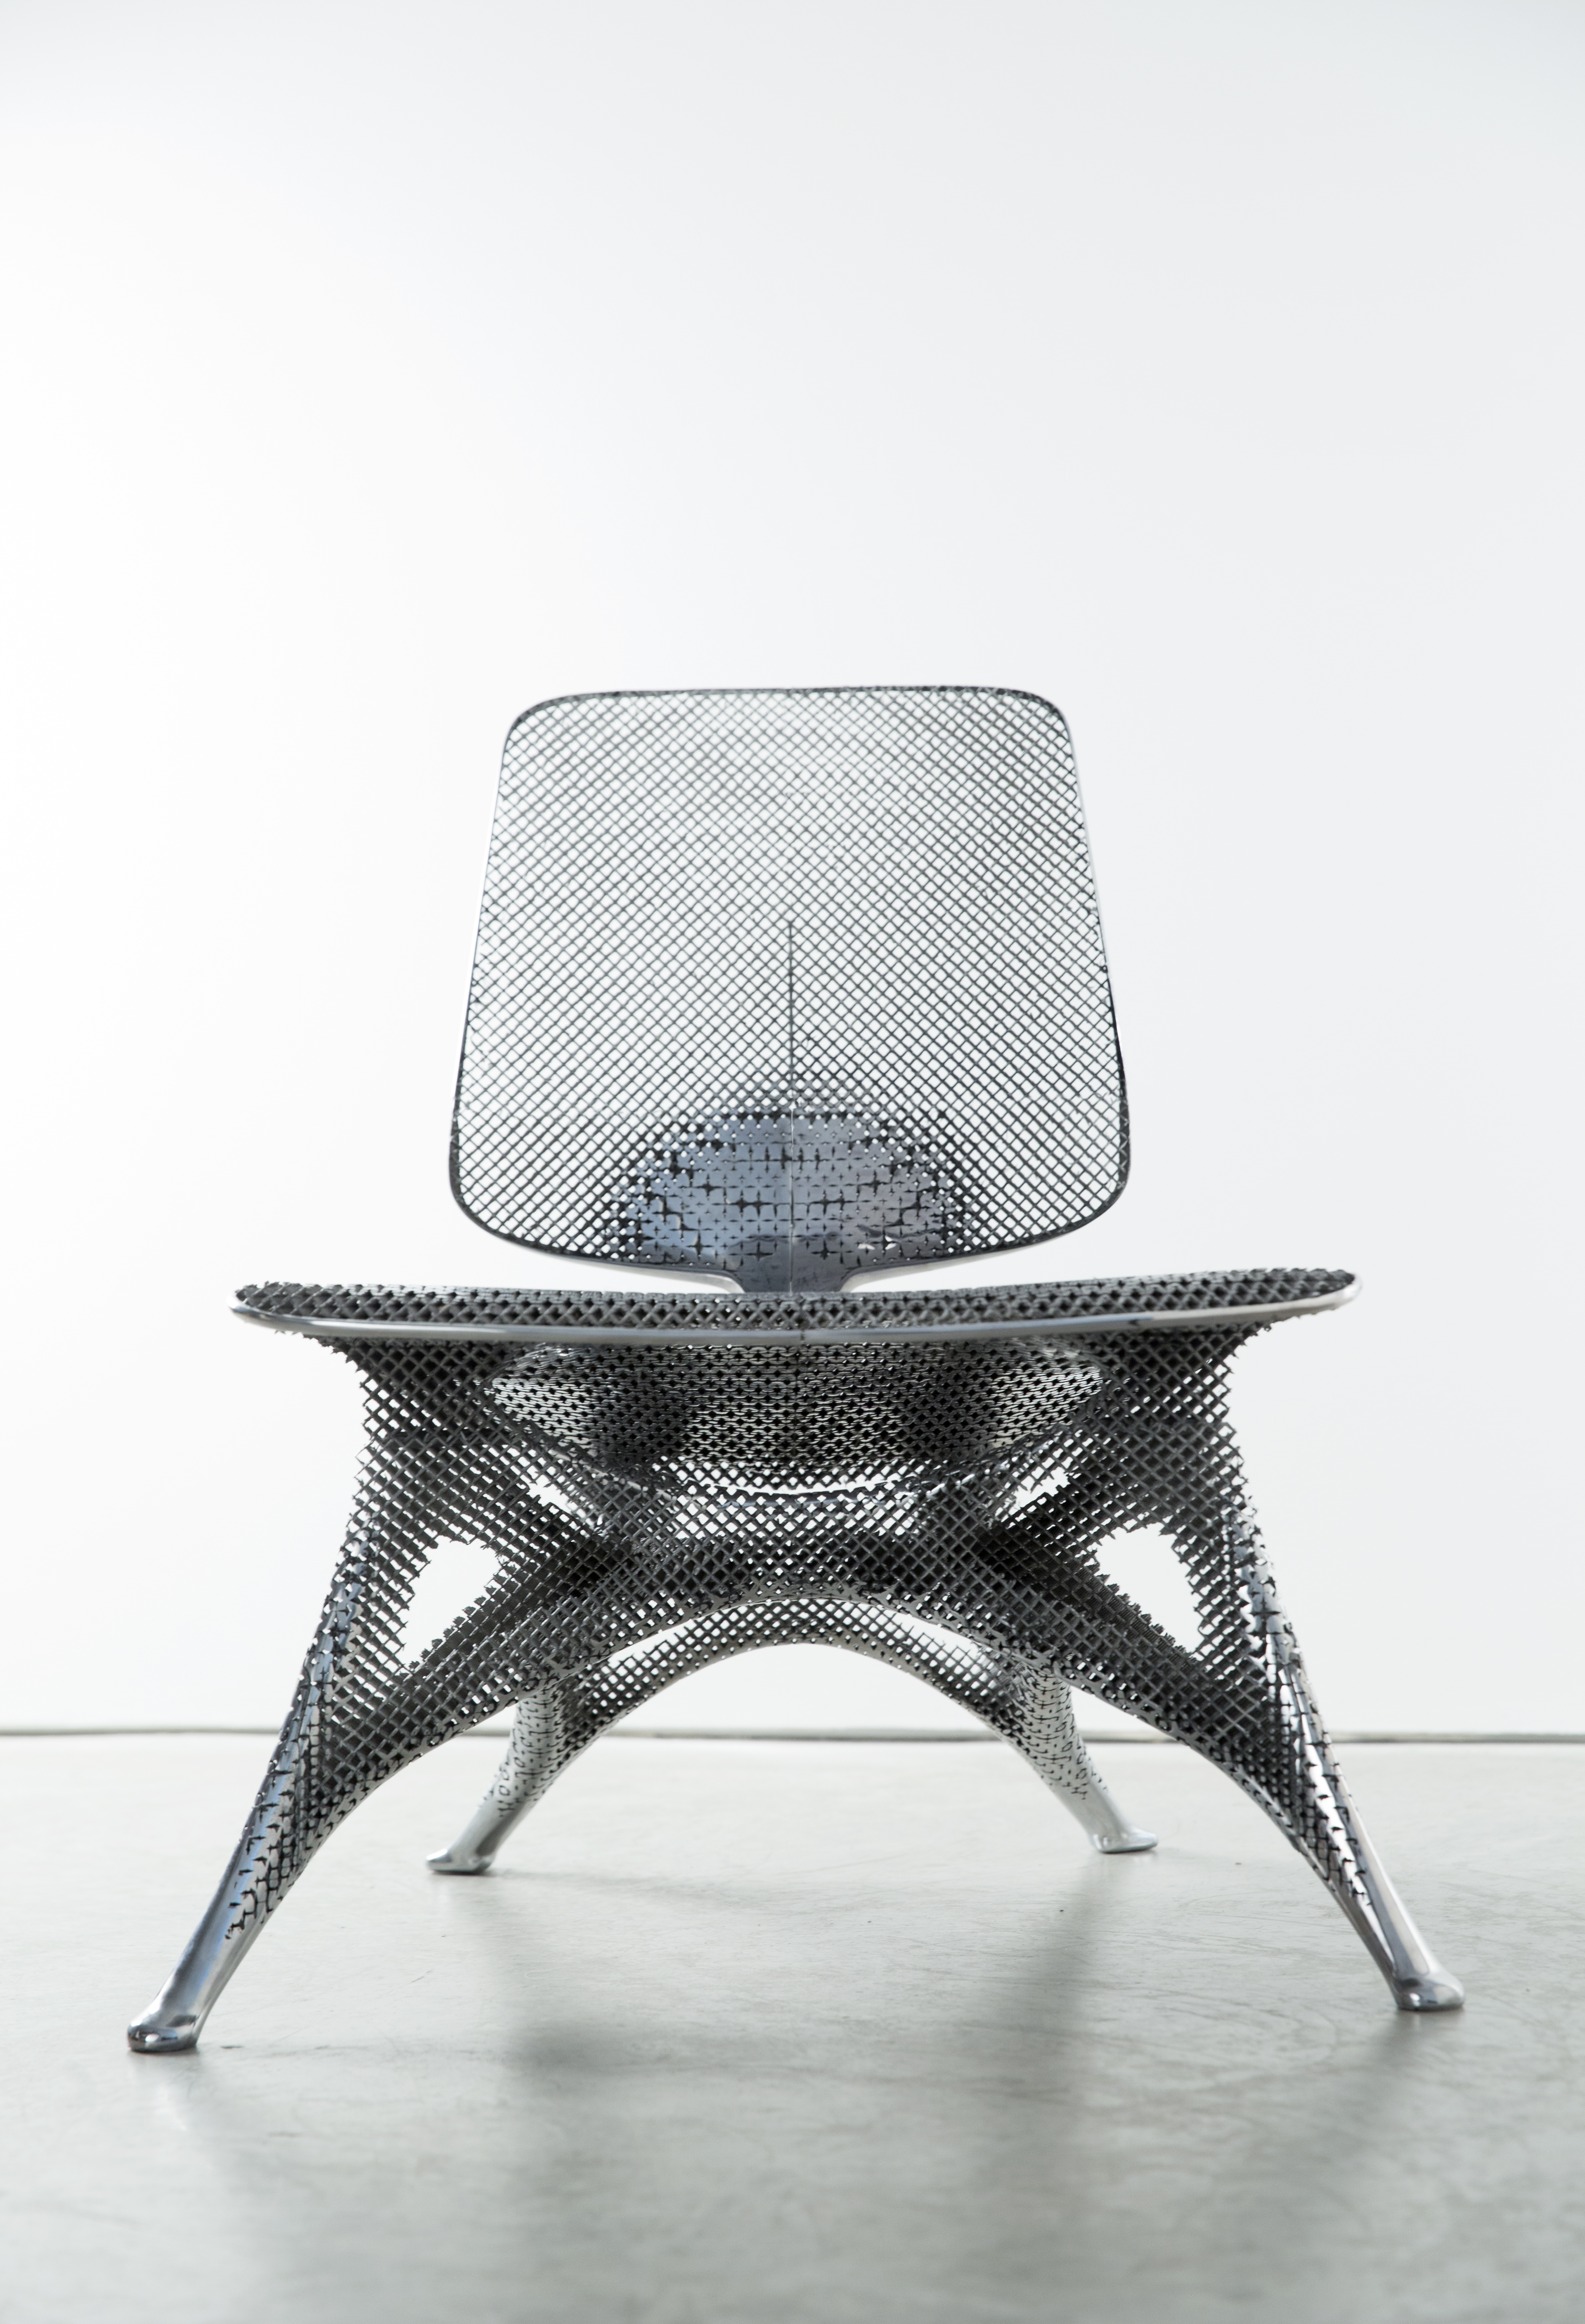 Aluminum Chair - Courtesy of Joris Laarman Lab